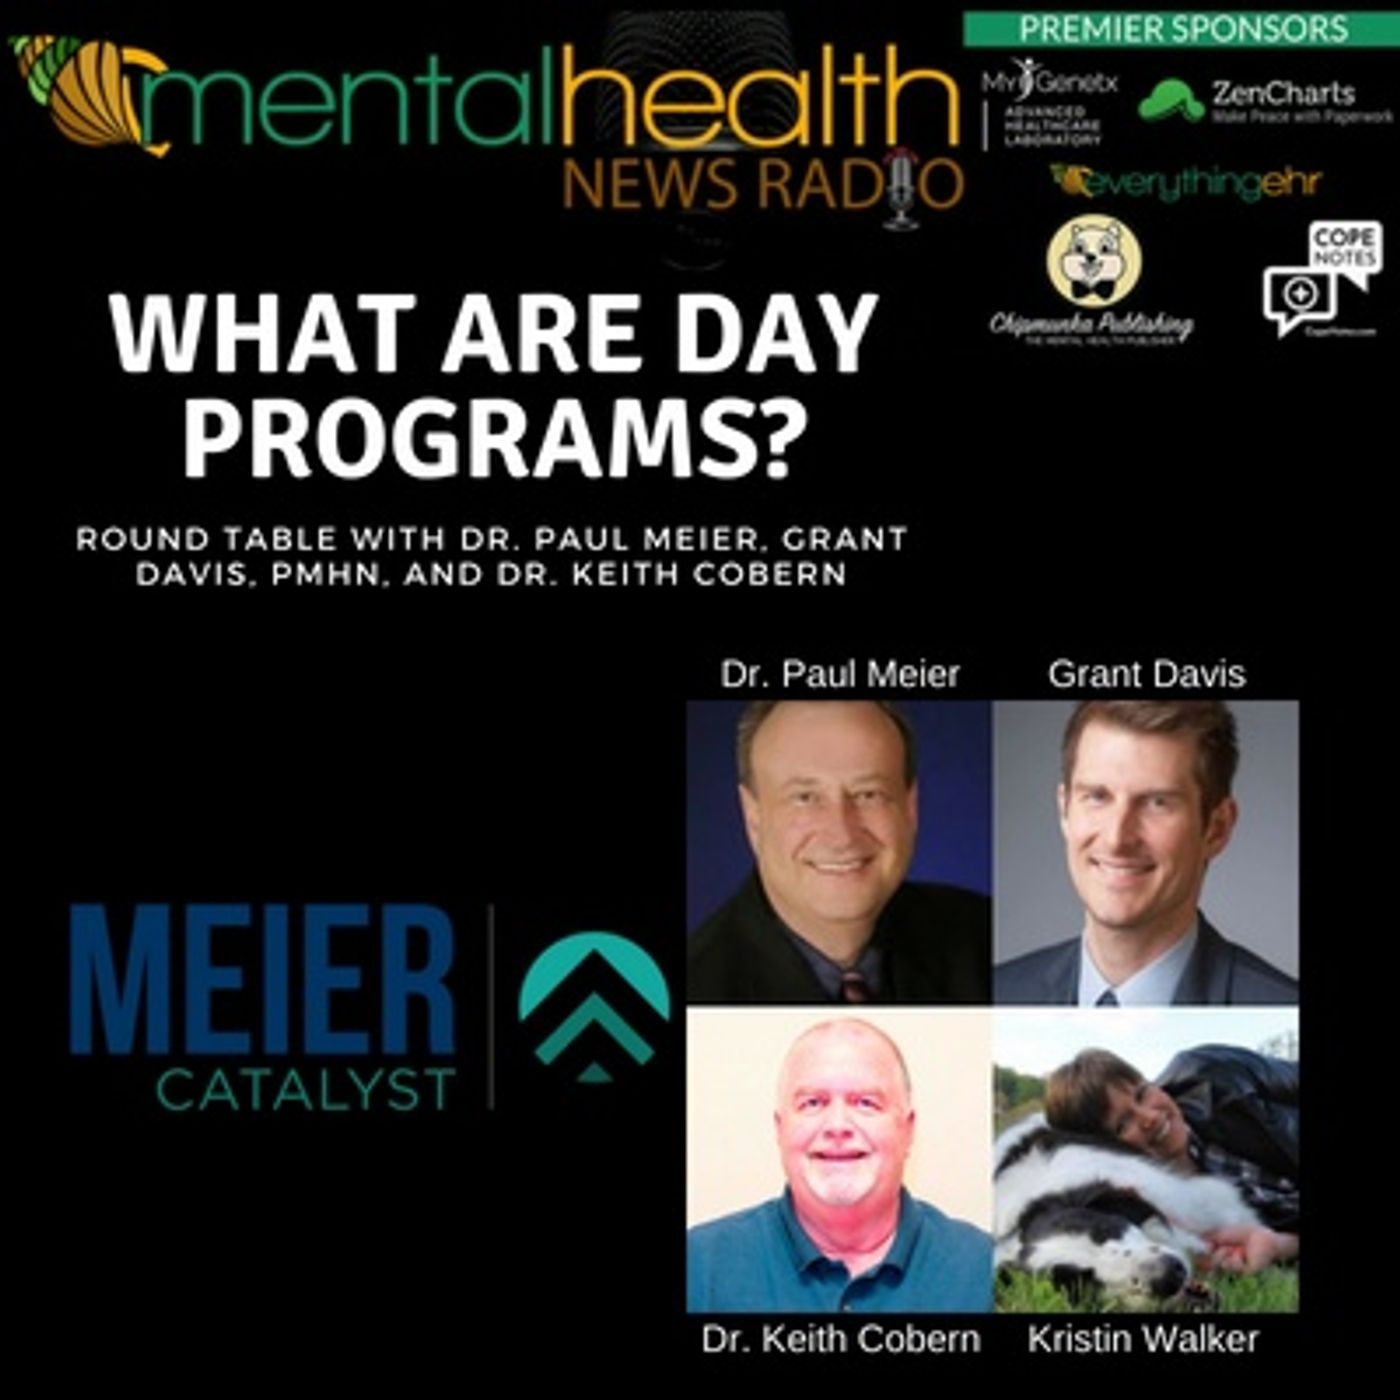 Mental Health News Radio - Round Table Discussions with Dr. Paul Meier: Day Programs For Rapid Healing